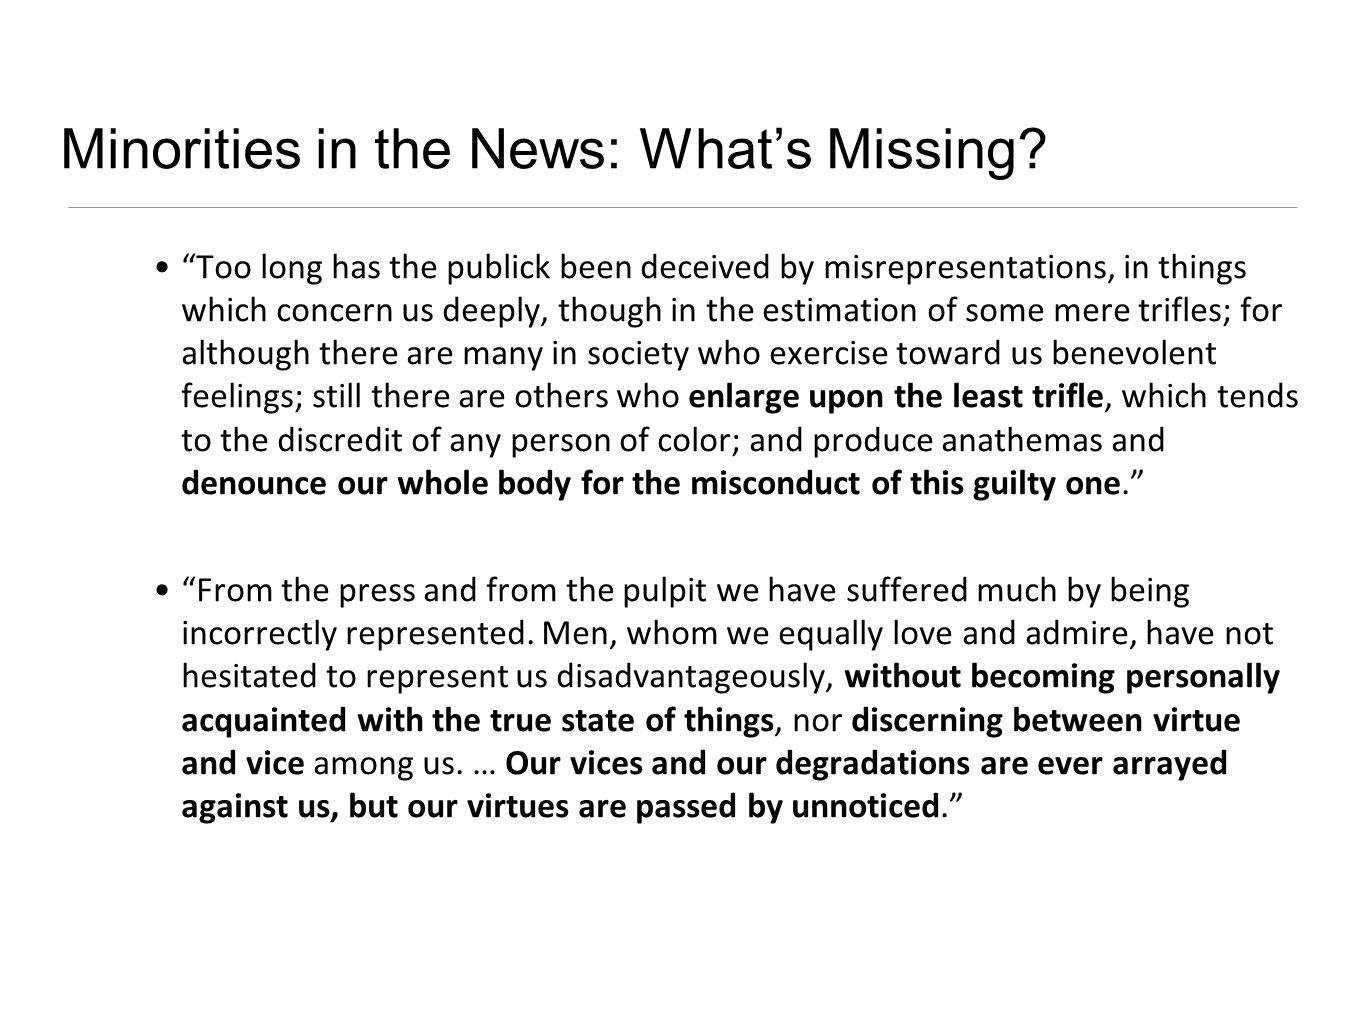 Minorities in the News: Whats Missing? Too long has the publick been deceived by misrepresentations, in things which concern us deeply, though in the